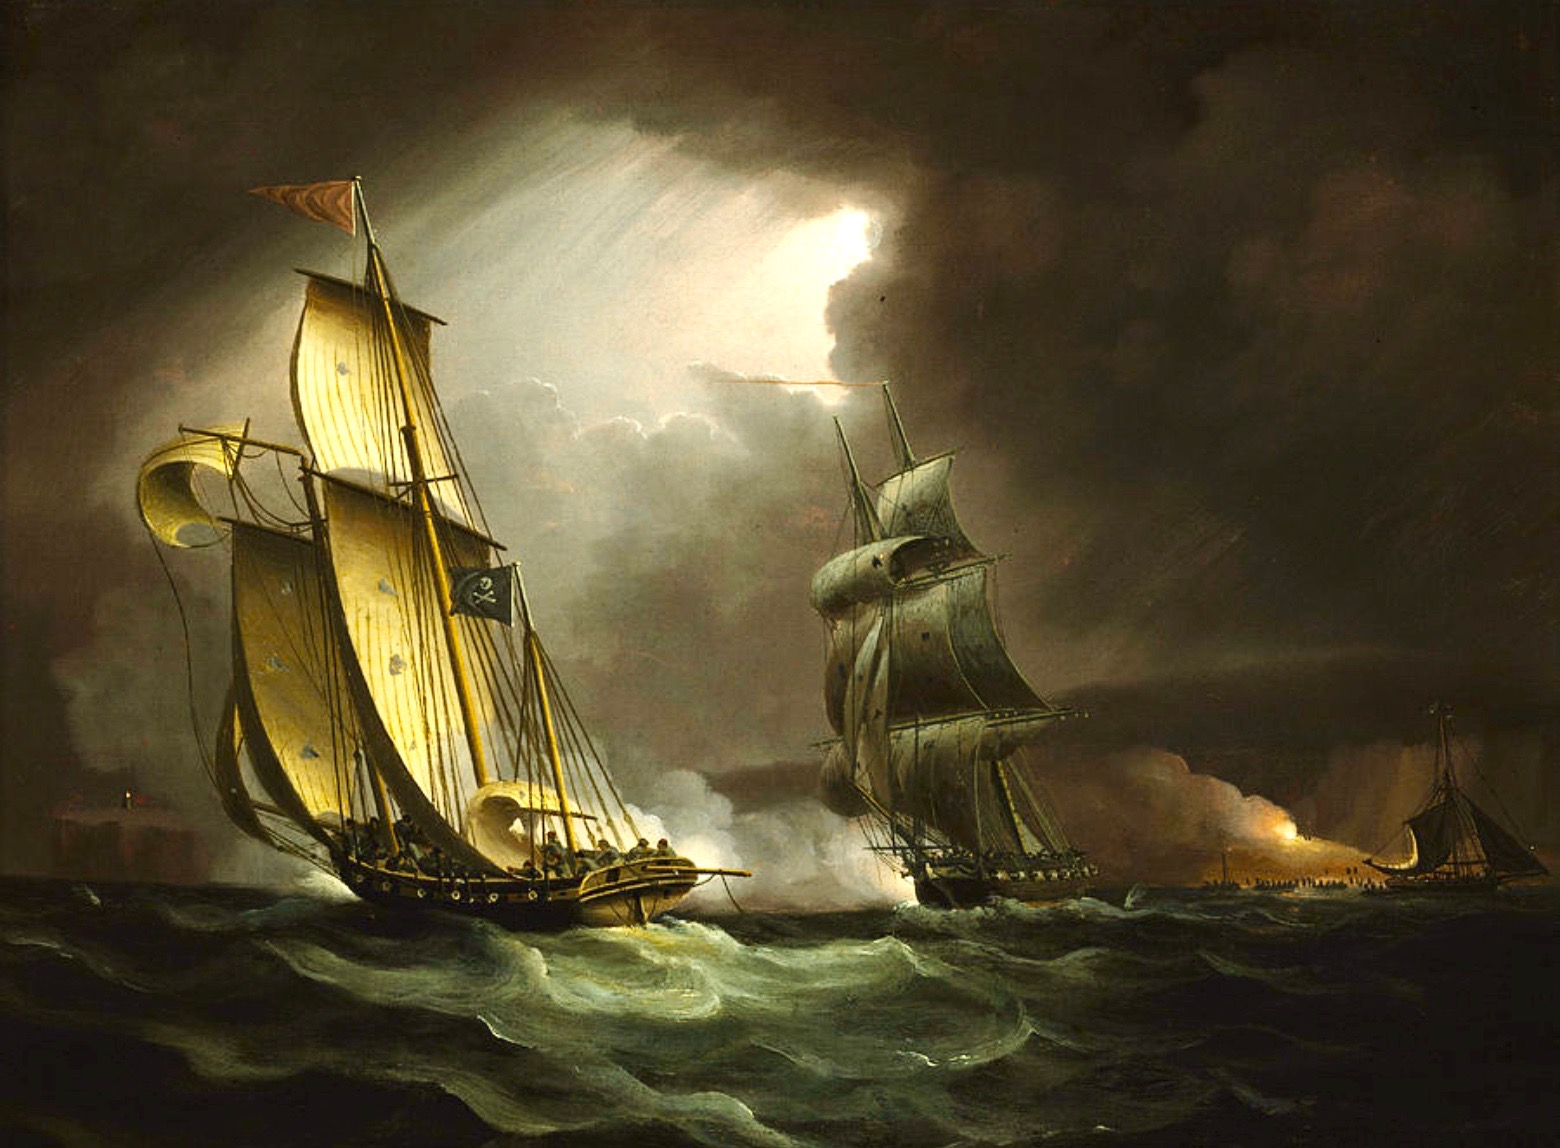 James Butterworth oil painting of a three masted 18 century privateer lugger being chased by a customs ship in dramatic seas.